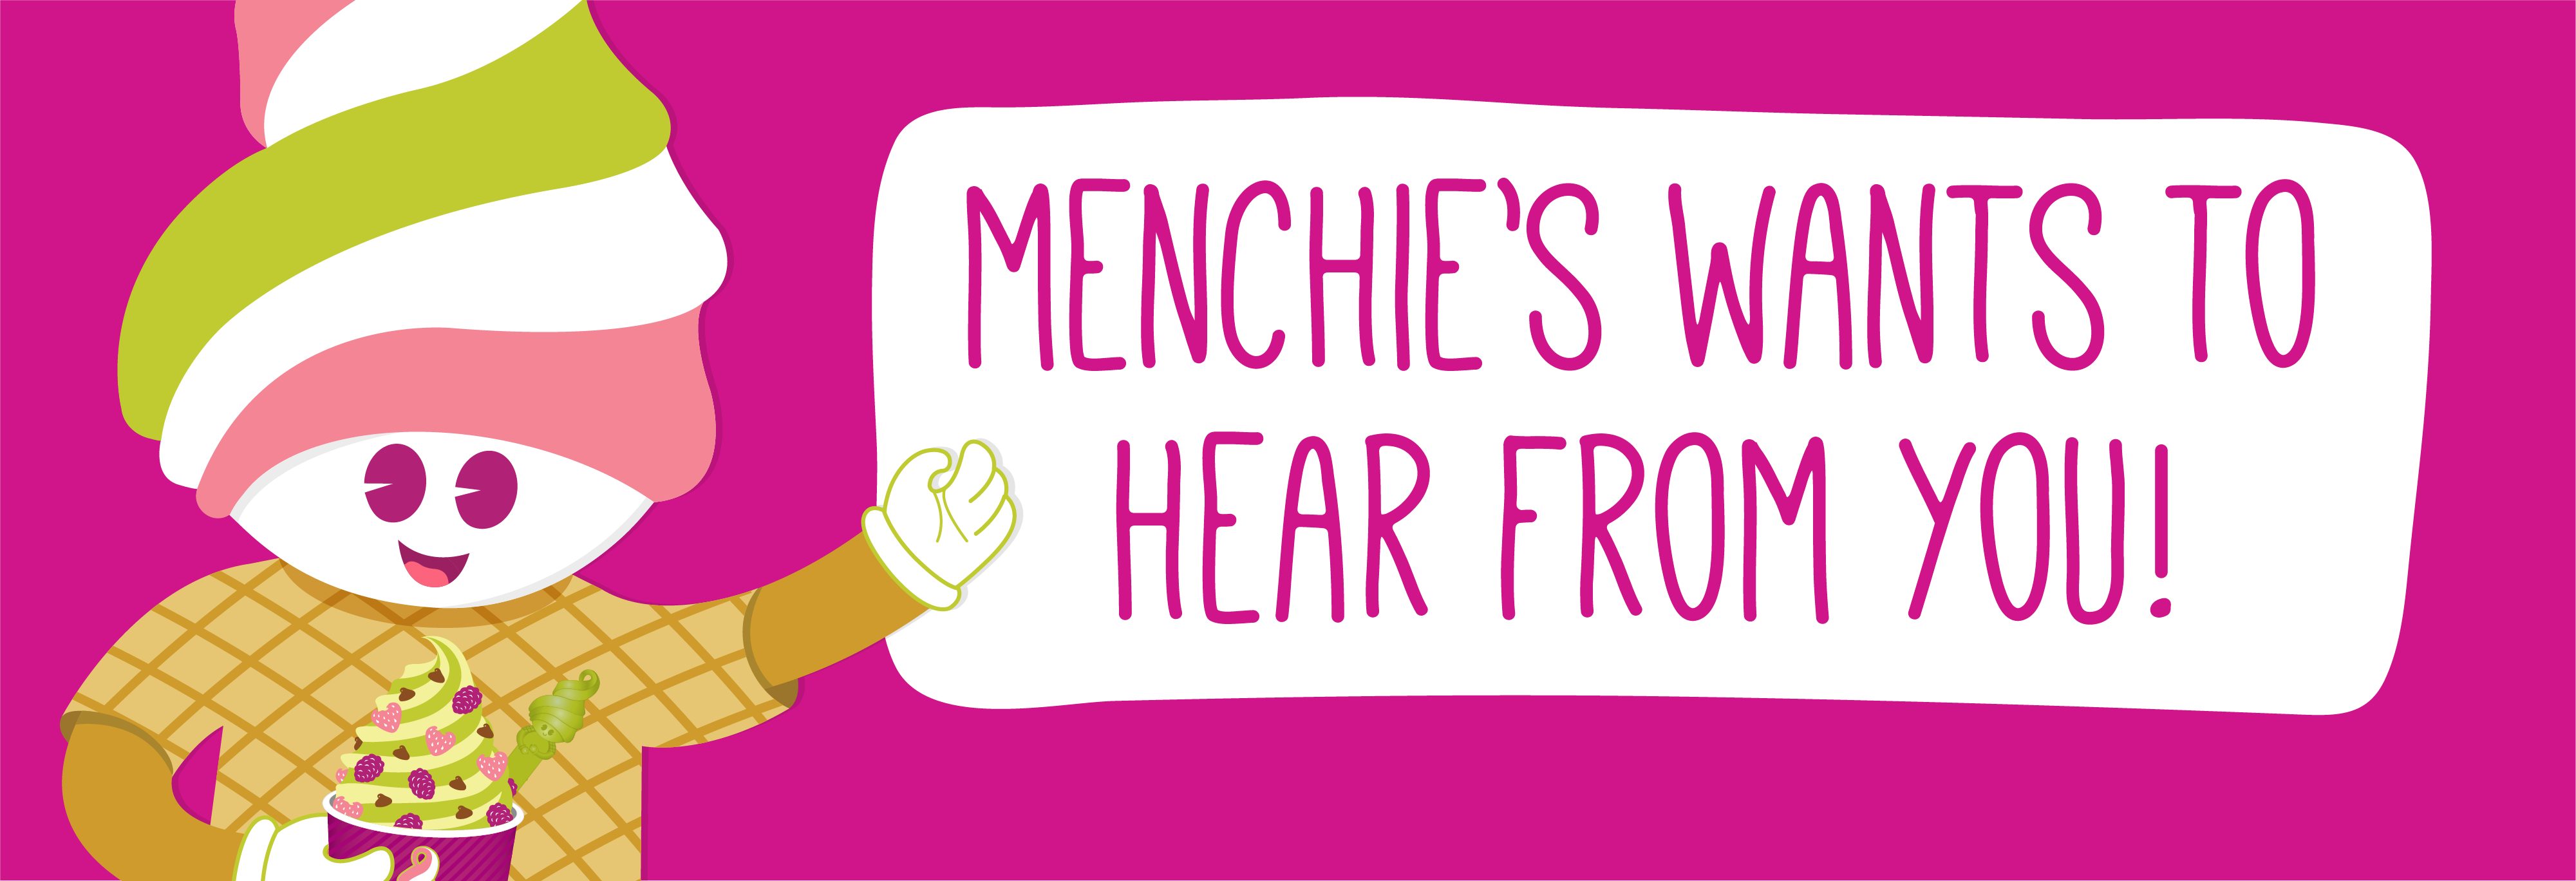 Menchie's wants to hear from you!